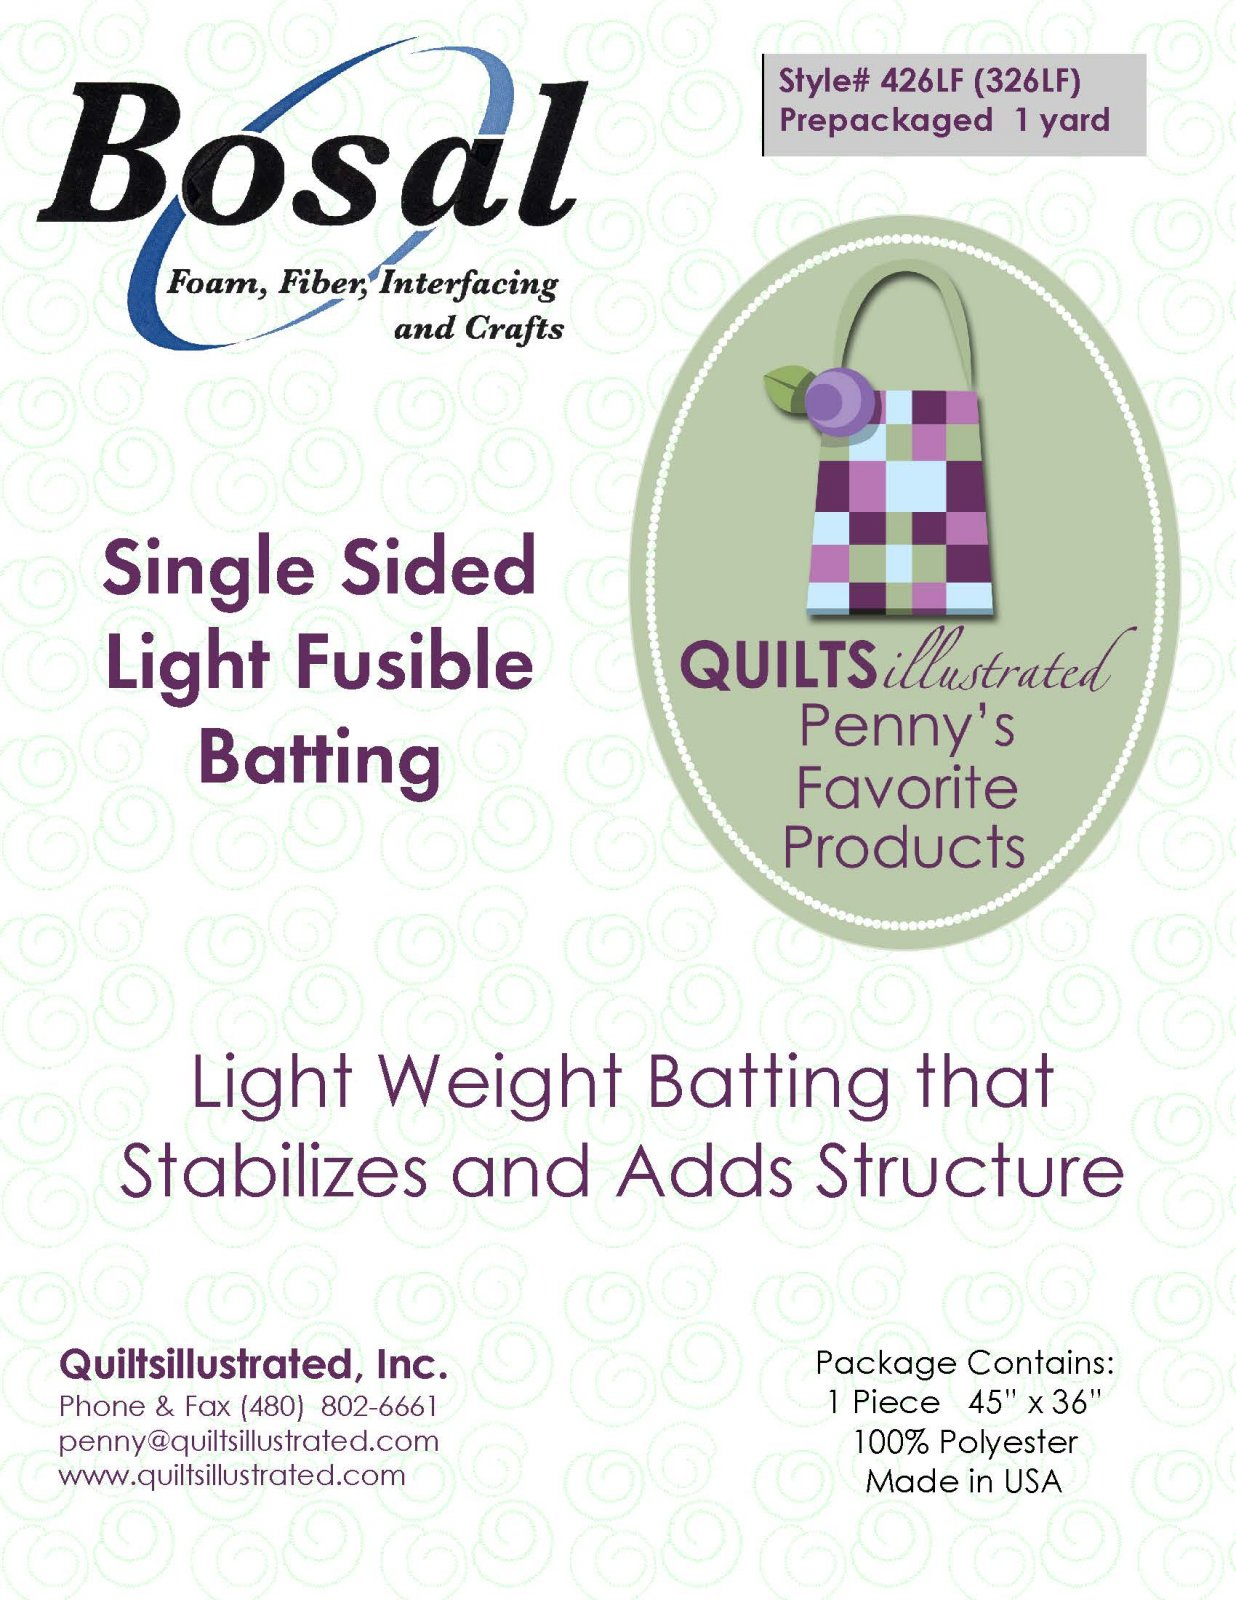 Bosal 426LF(326LF) Light Fusible Batting, 1 yard package